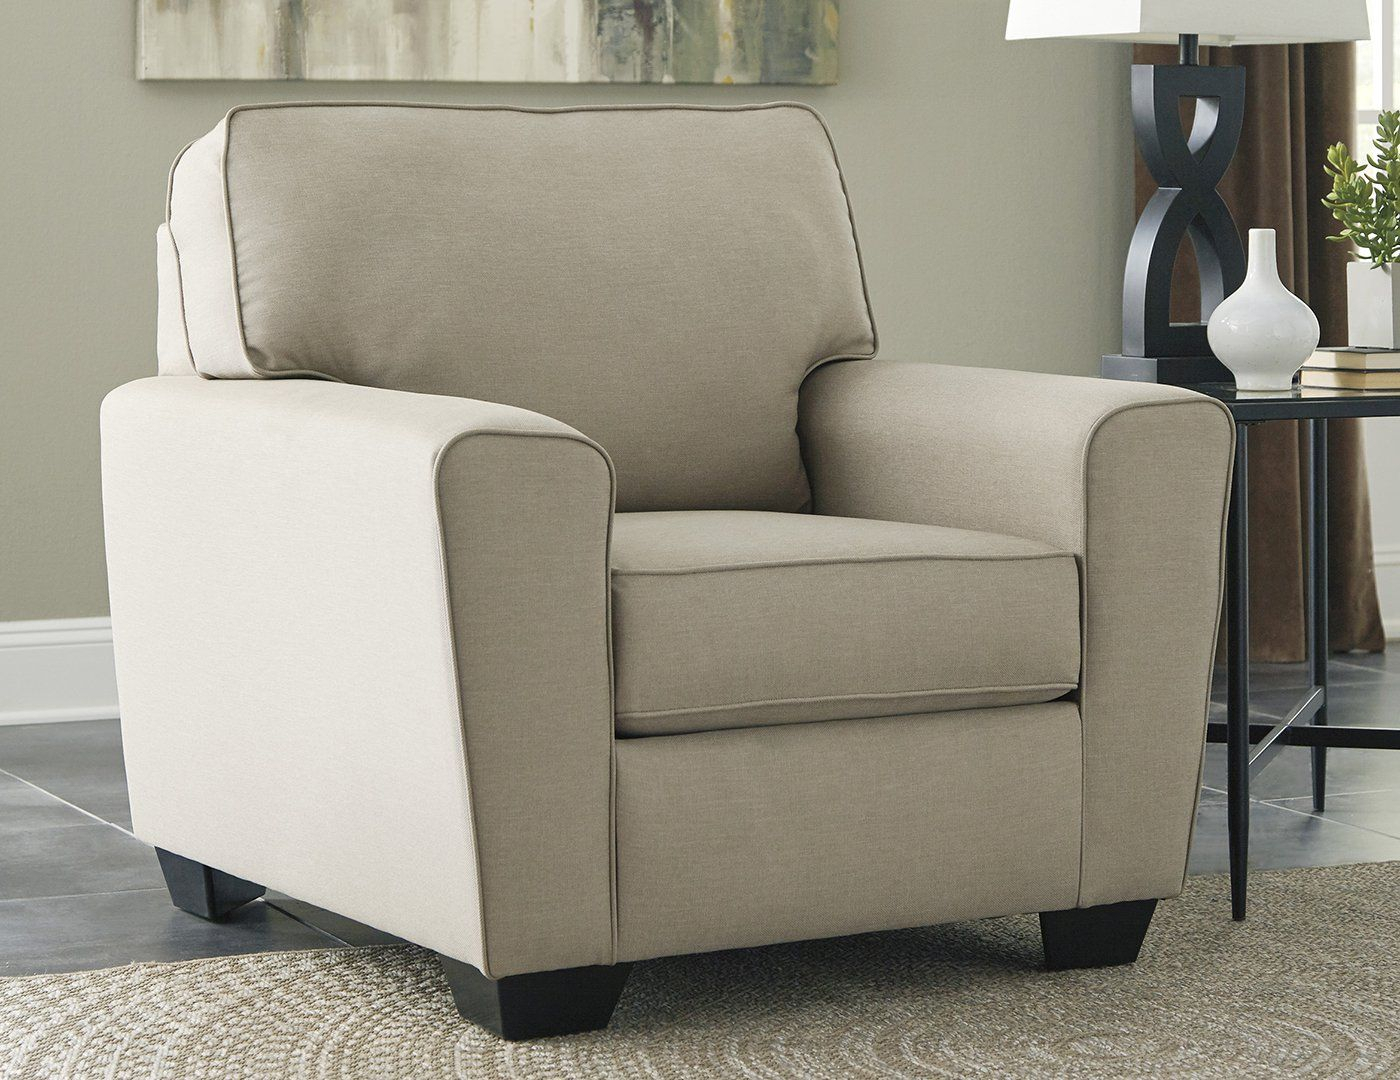 Riley Chair | Furniture, Bedroom Furniture, Armchair Inside Kasha Armchairs (View 5 of 15)